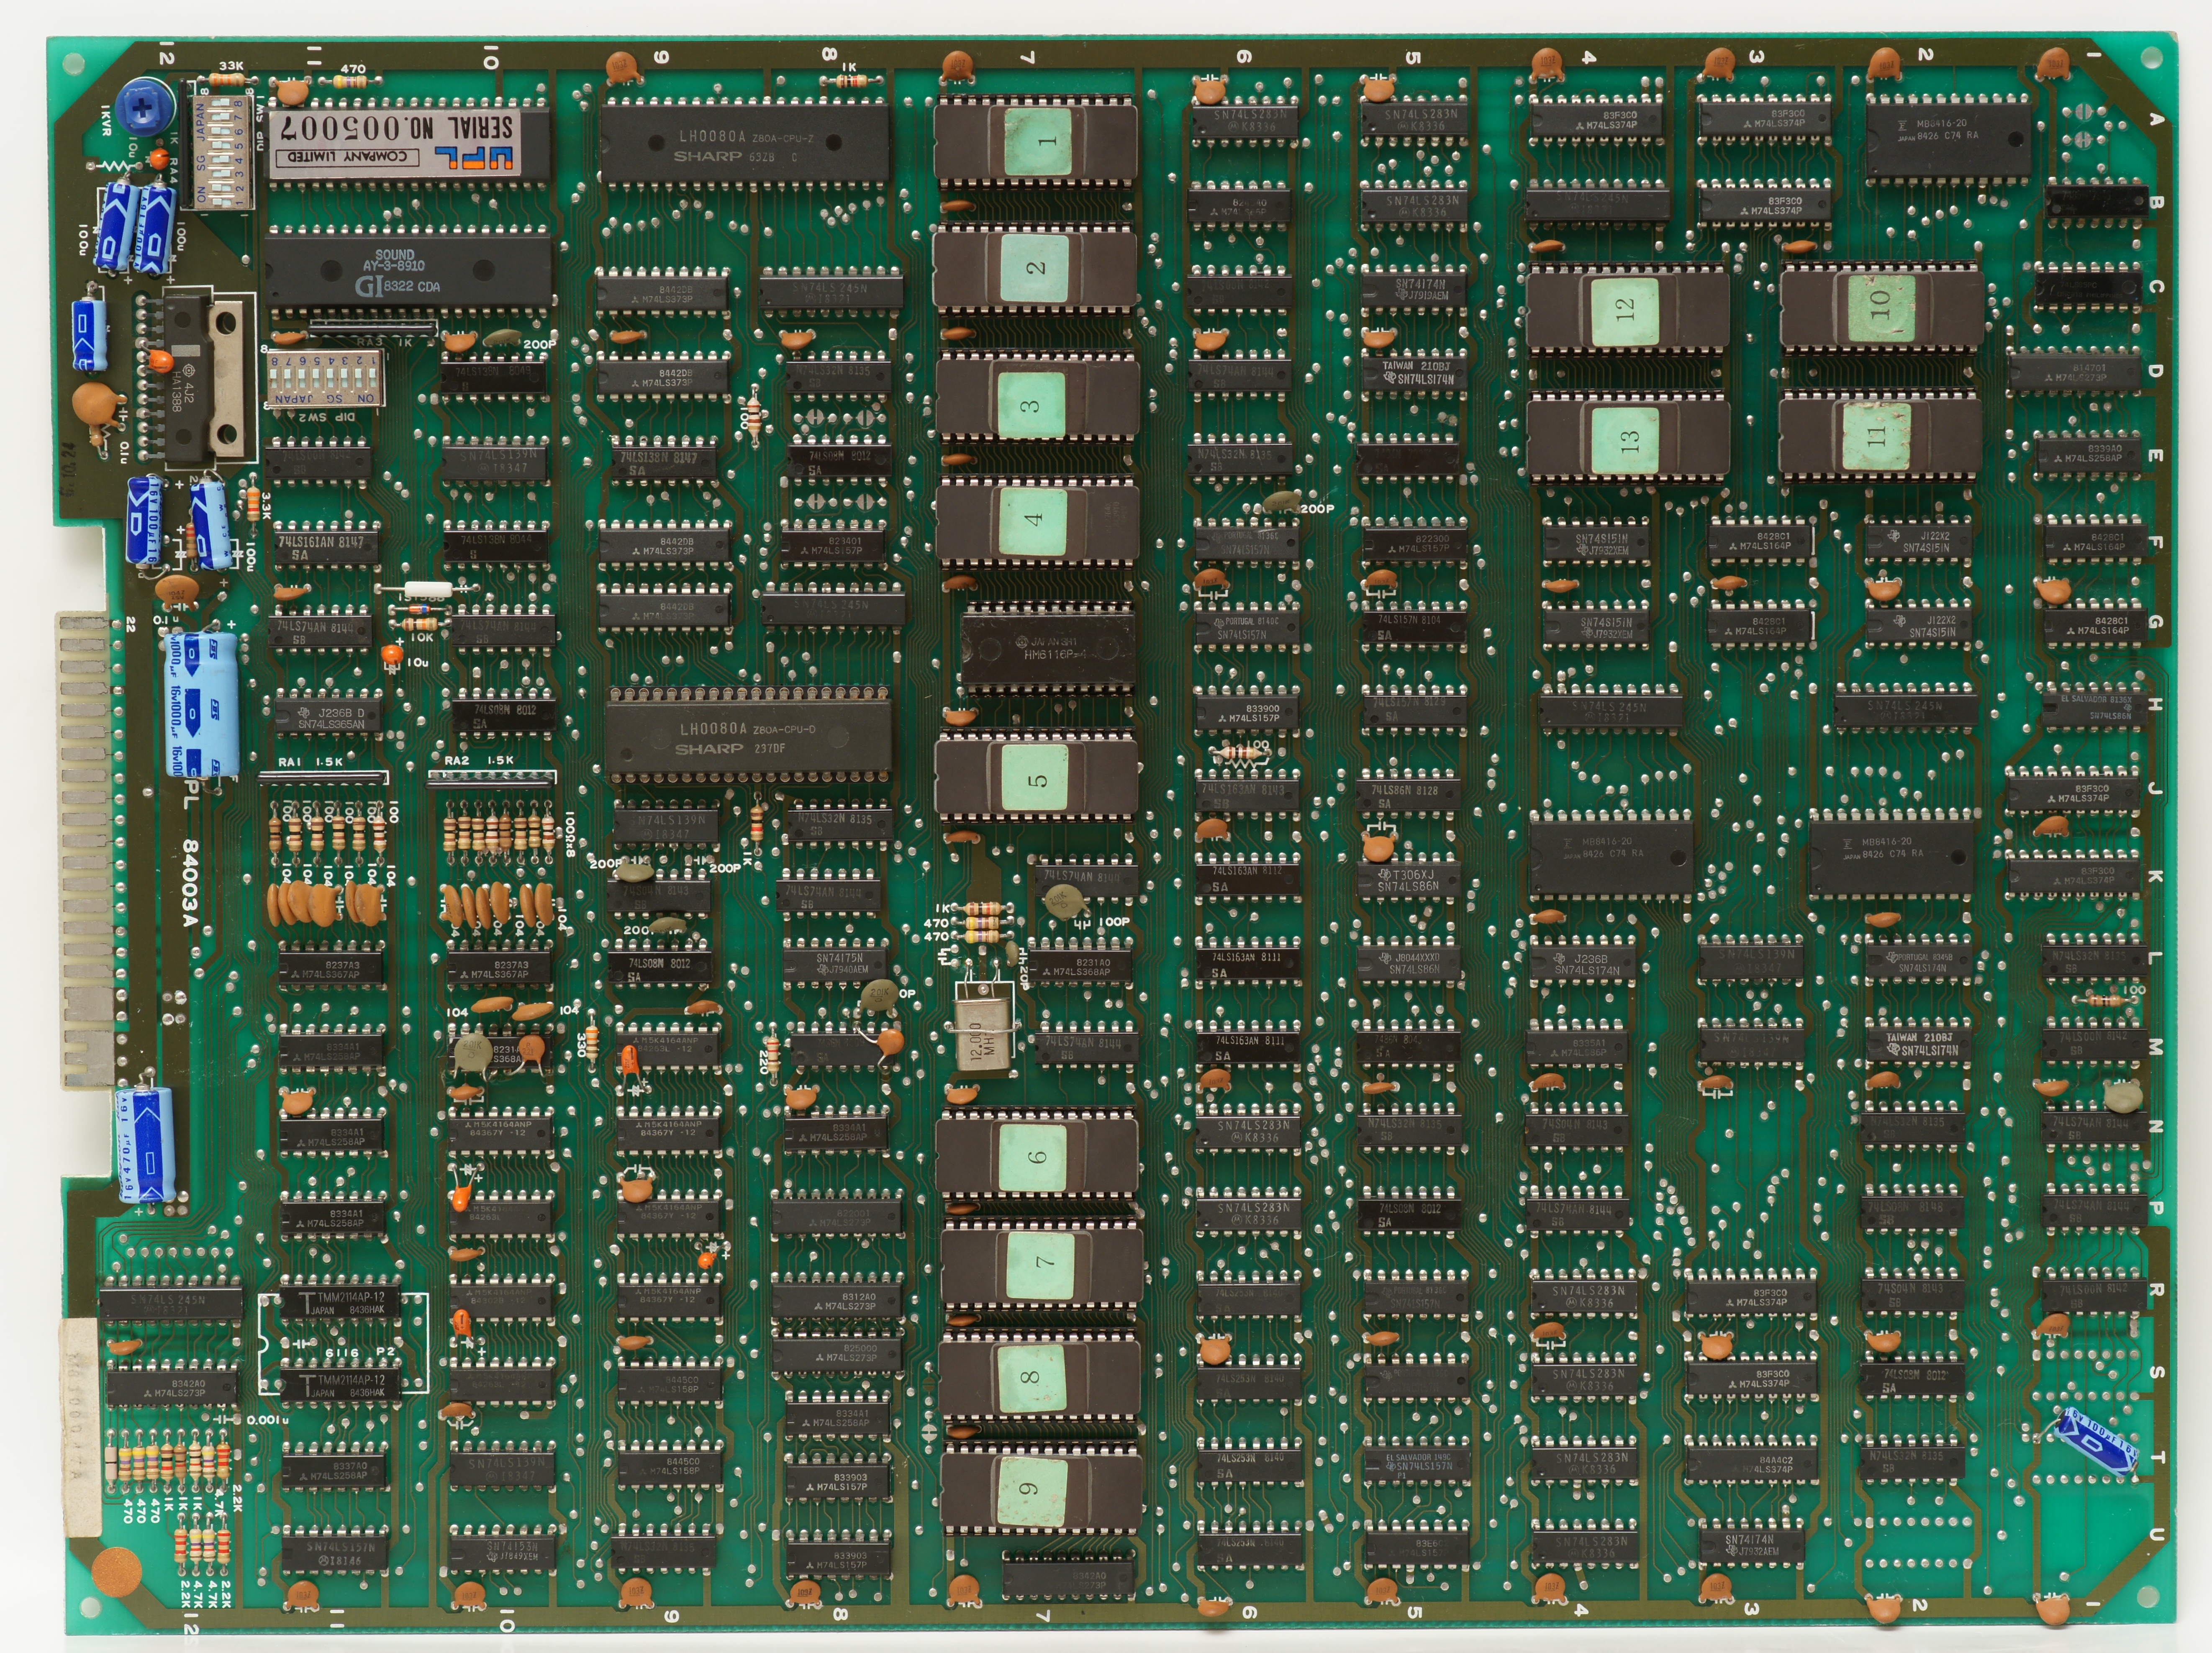 Printed Wire Board How Made Its Library Of Wiring Diagrams Boards Cross Section A Circuit Are Rh Maynarddxhd Soup Io Connectors Pwb